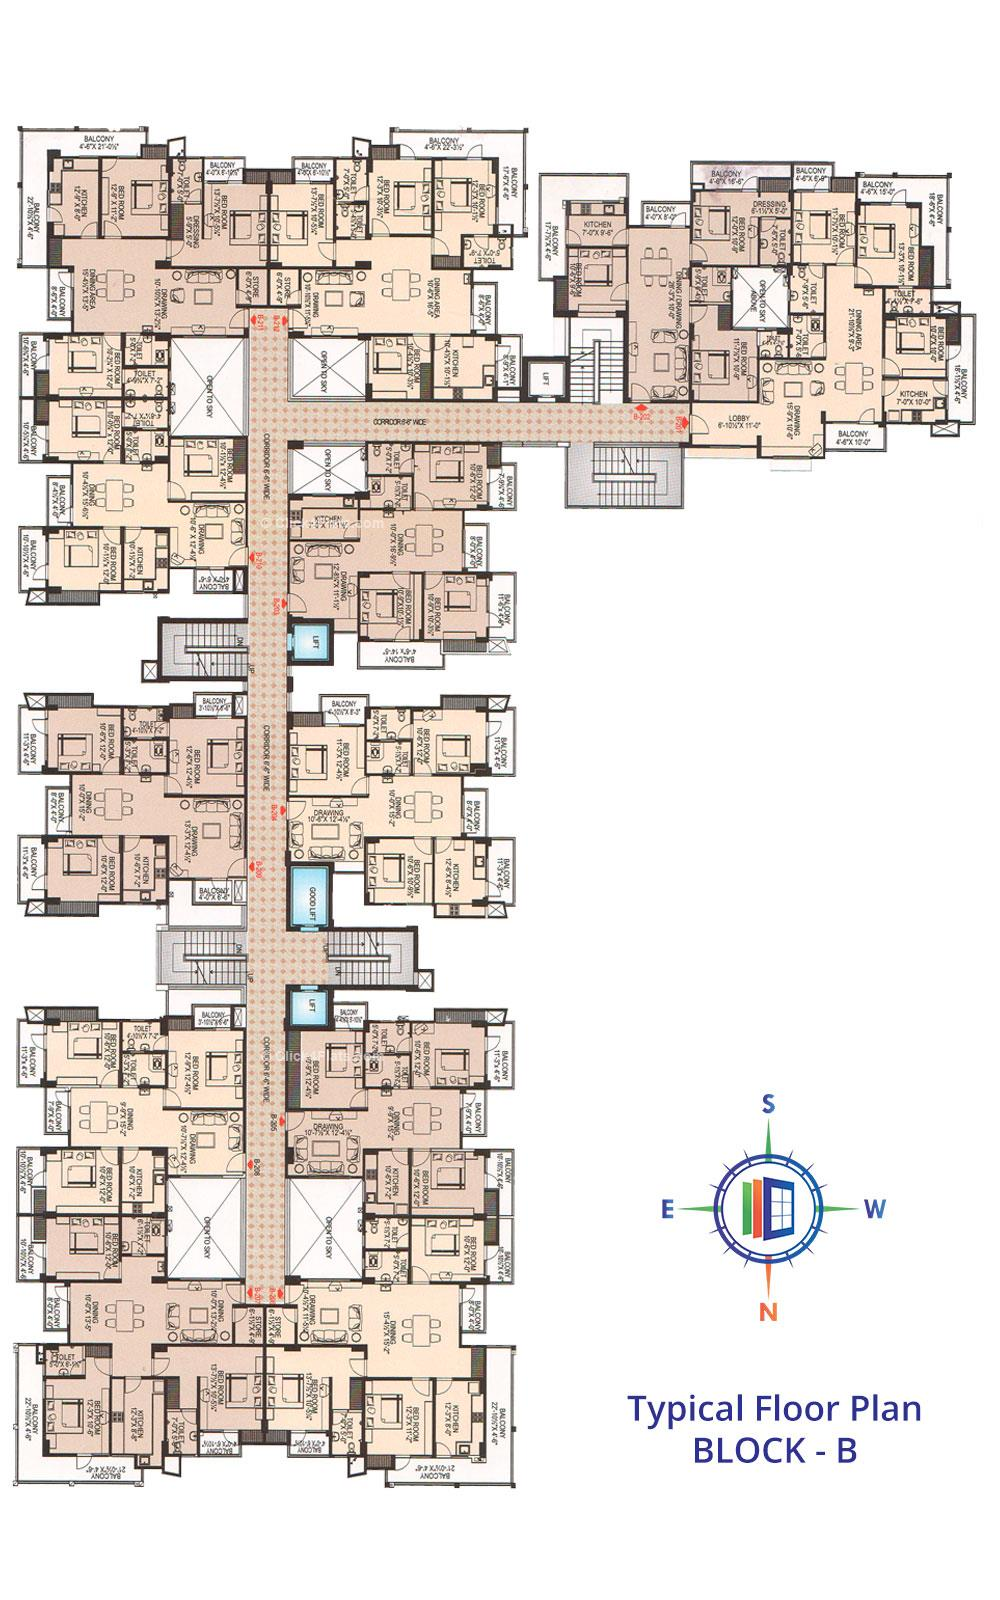 Tirupati Nilay Typical Floor Plan (Block B)